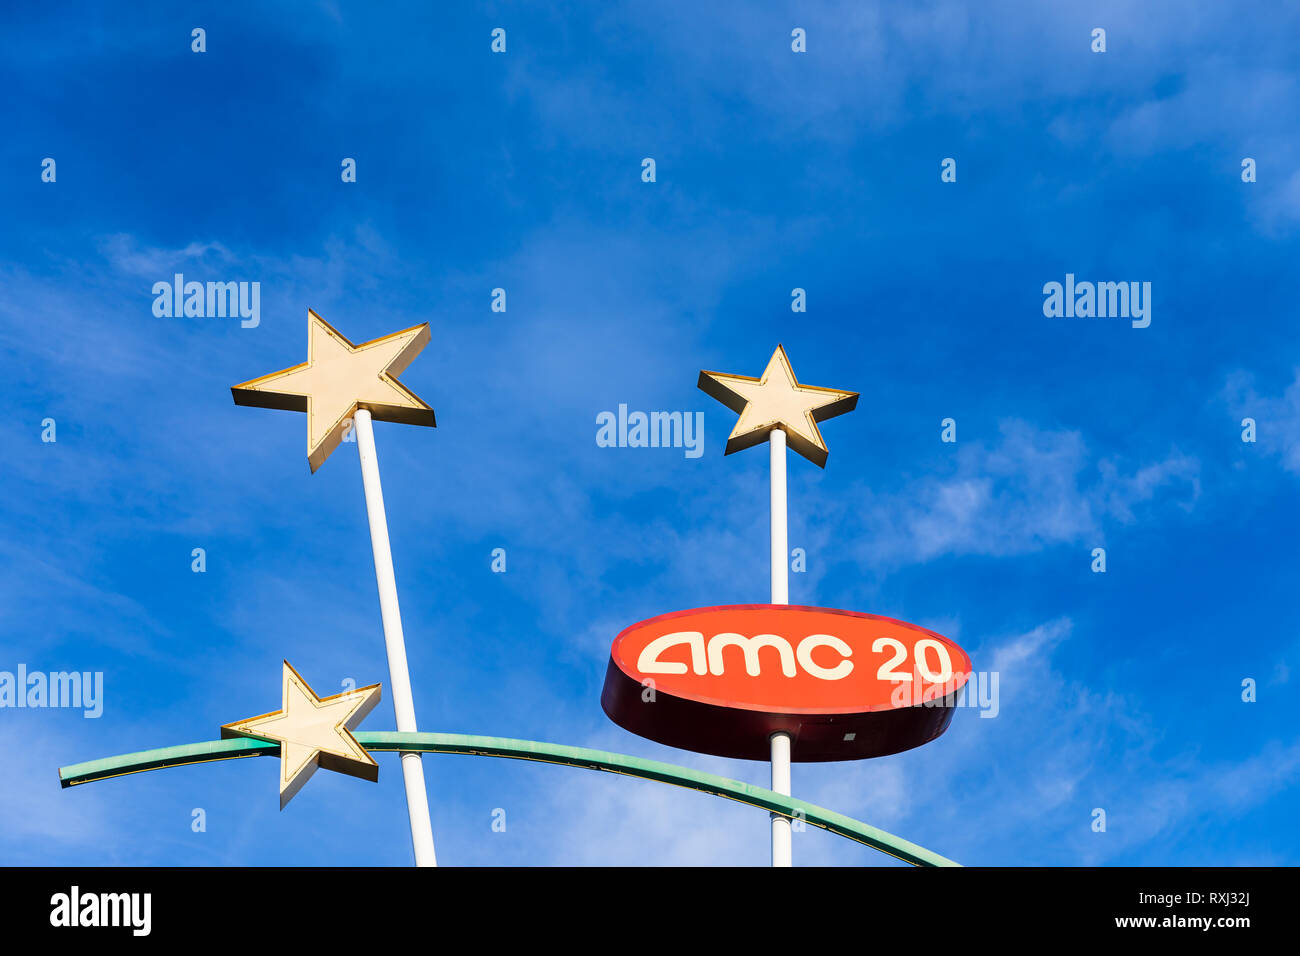 Amc Mercado 20 High Resolution Stock Photography And Images Alamy